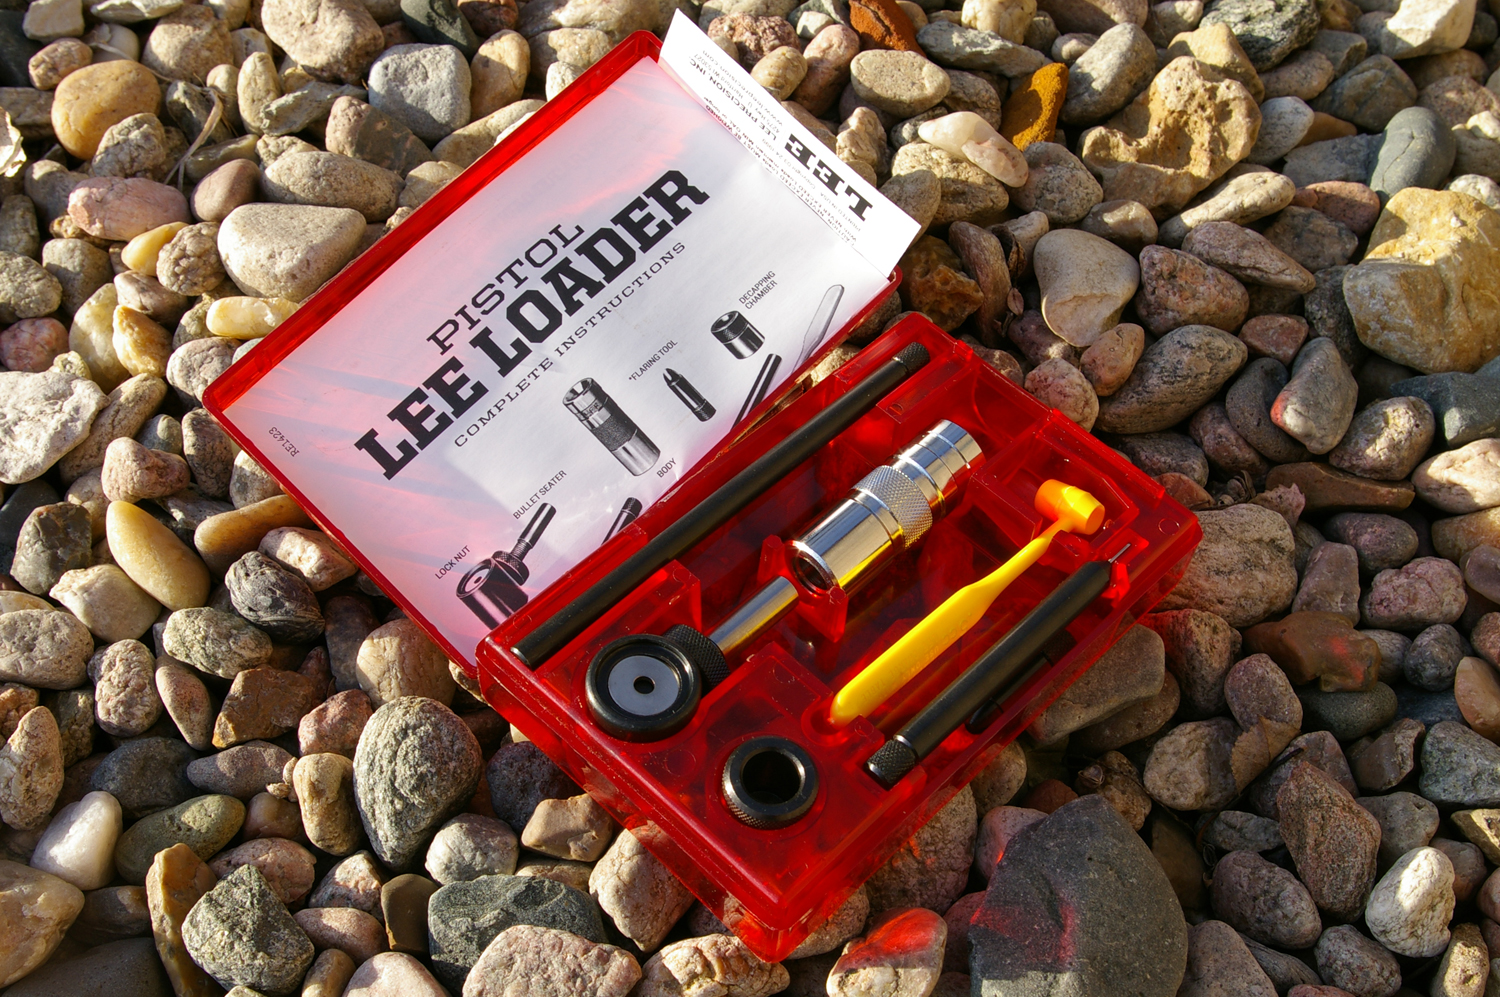 Survival Reloading: Lee Loader Review for Basic Survival Conditions